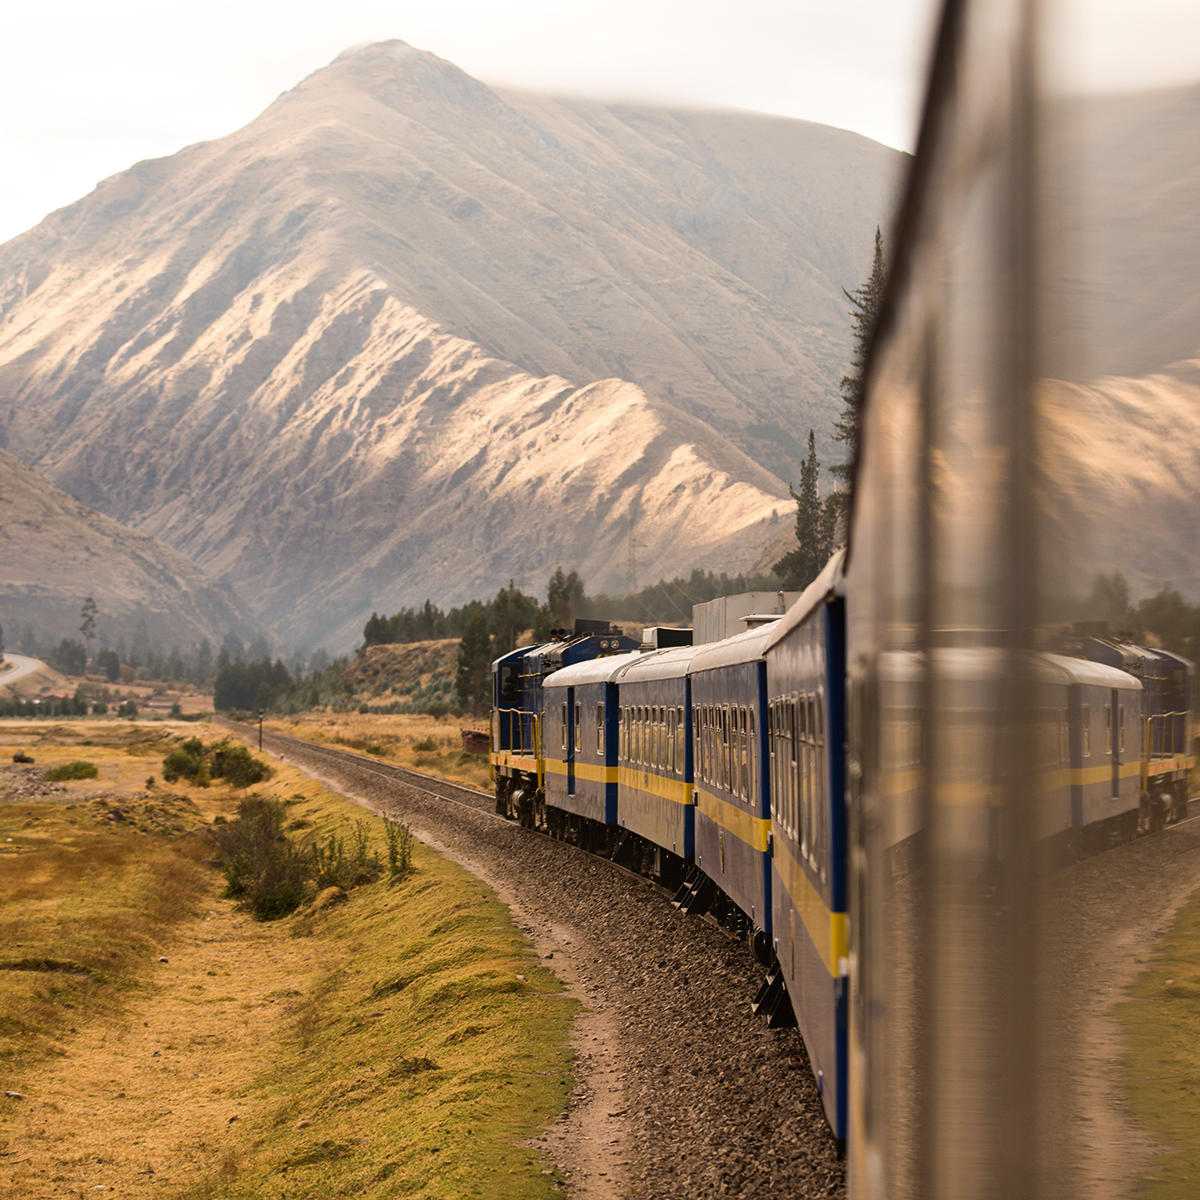 View of the train and mountains on the way to Machu Picchu